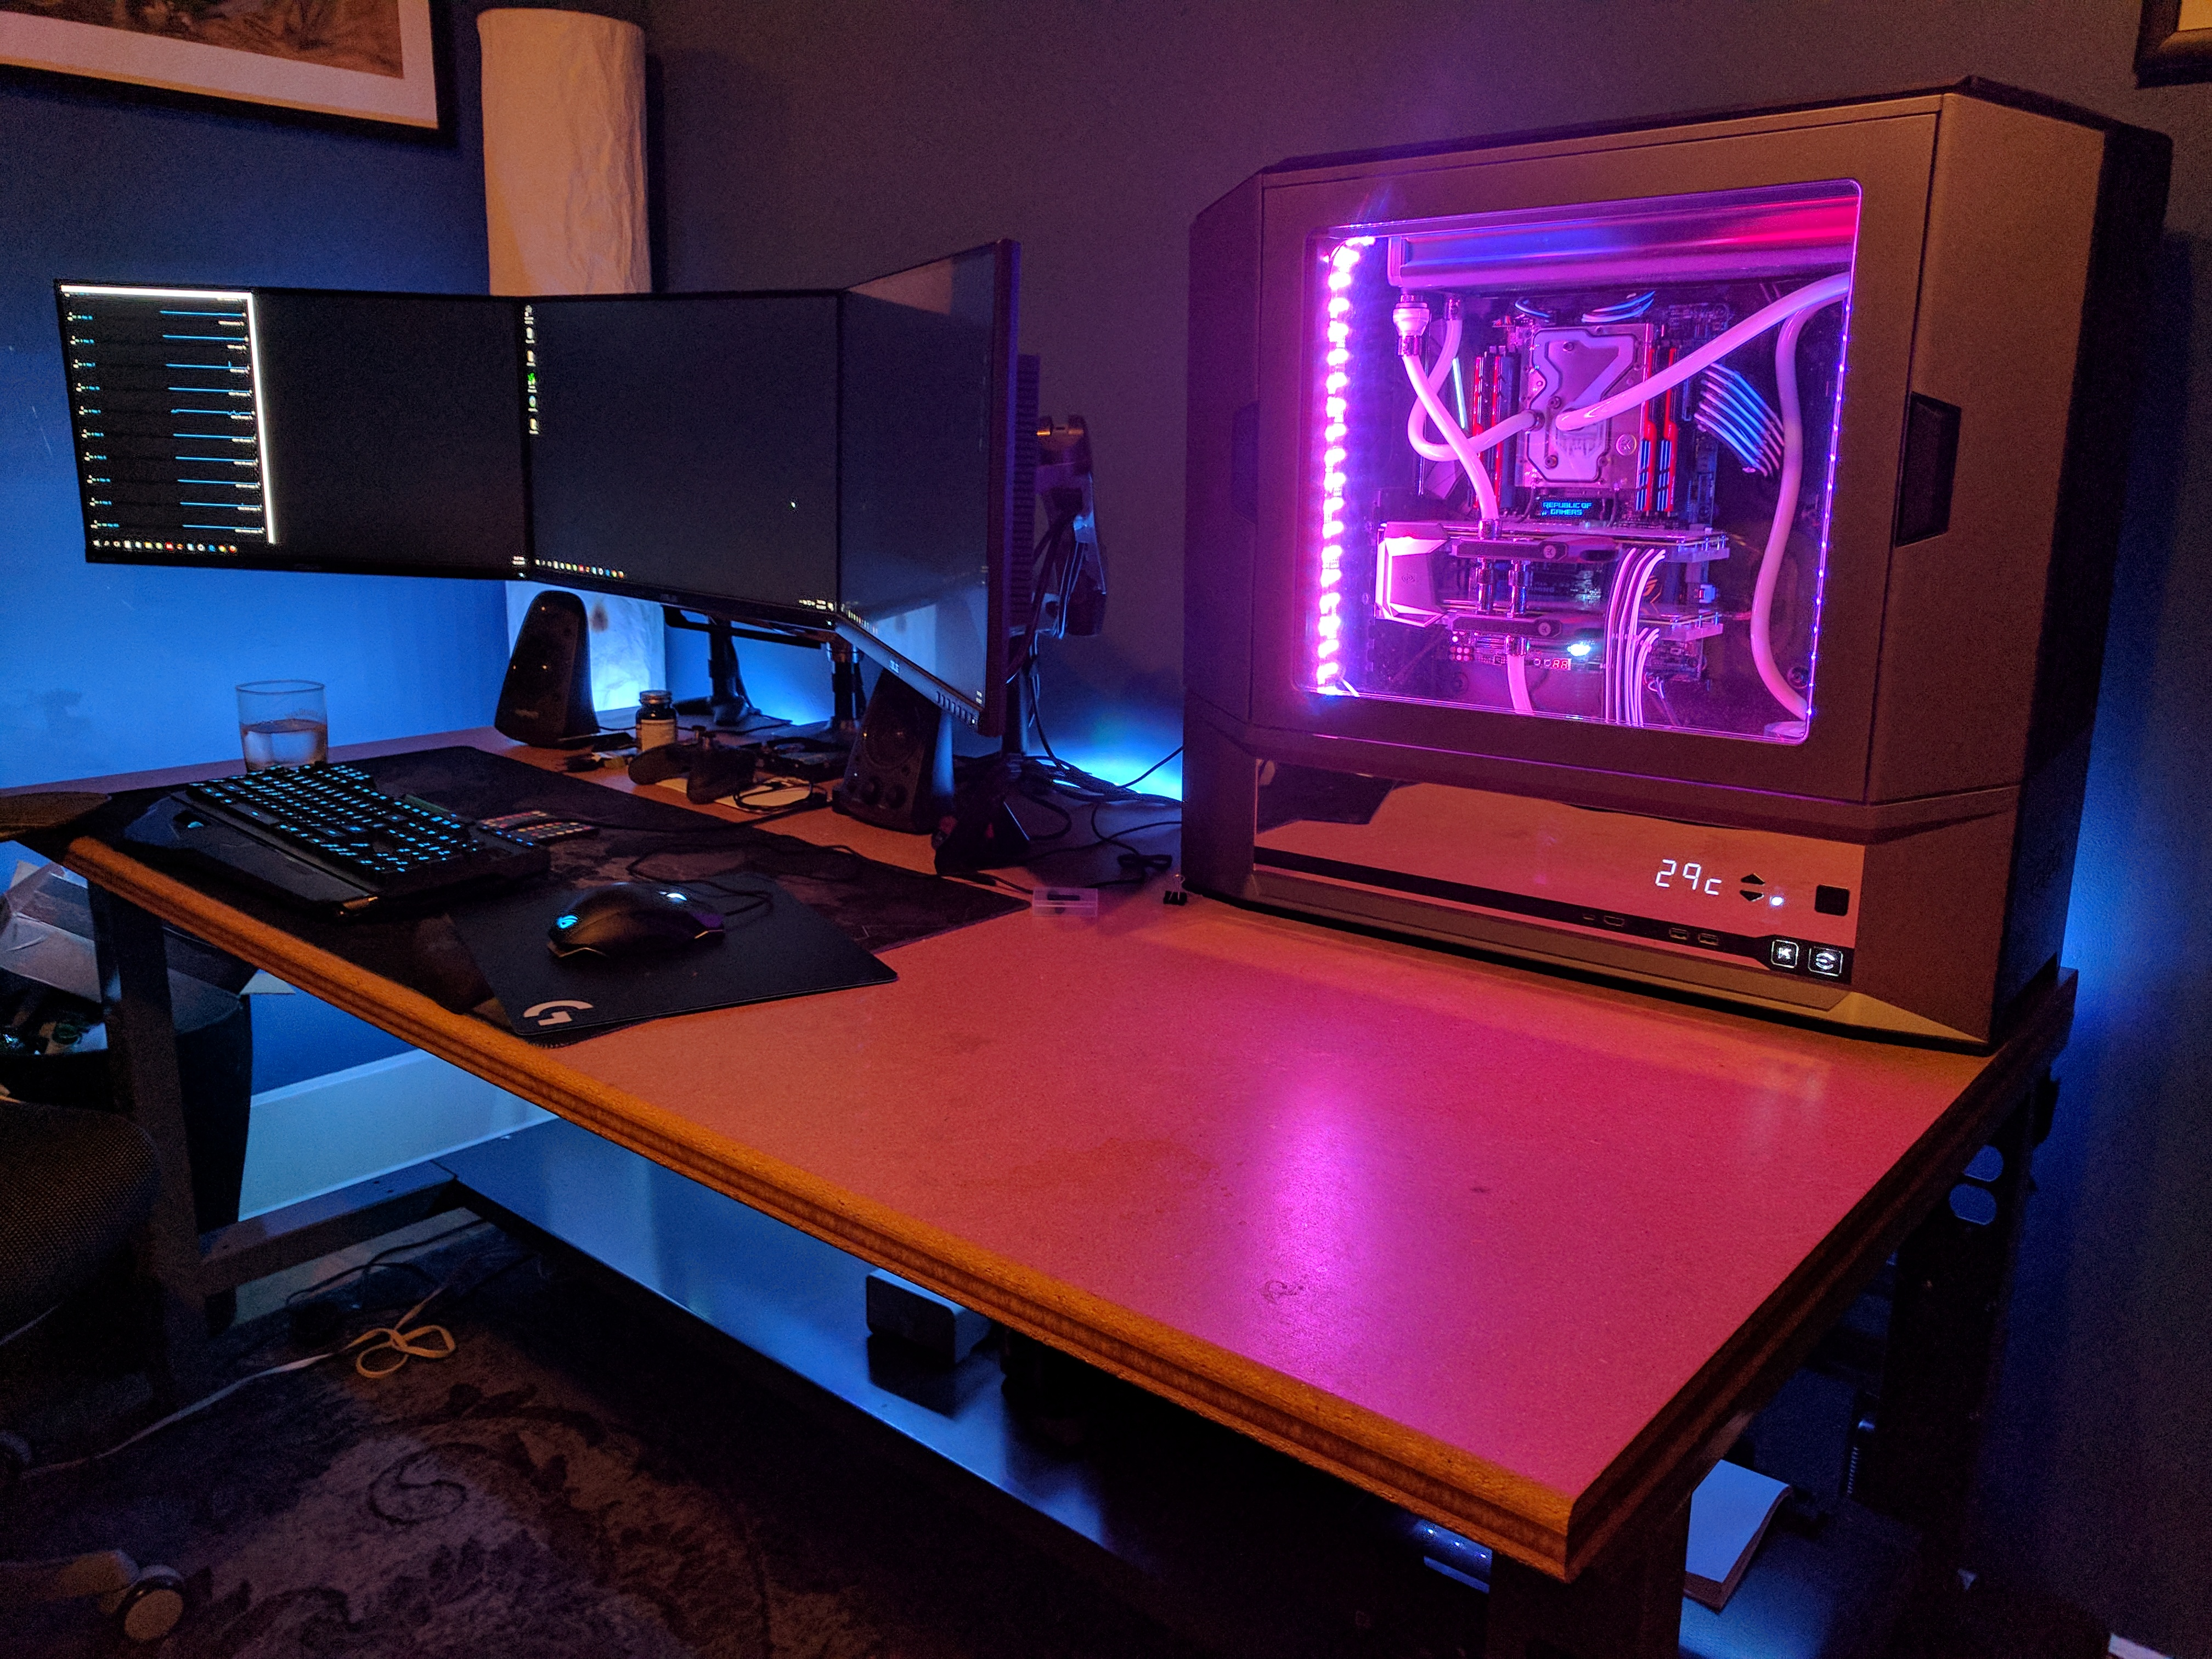 class wood is and designs desk front so has there top true in update custom glass world ces pc this chassis case smoked highlighted tempered with computer window sport win developed computex